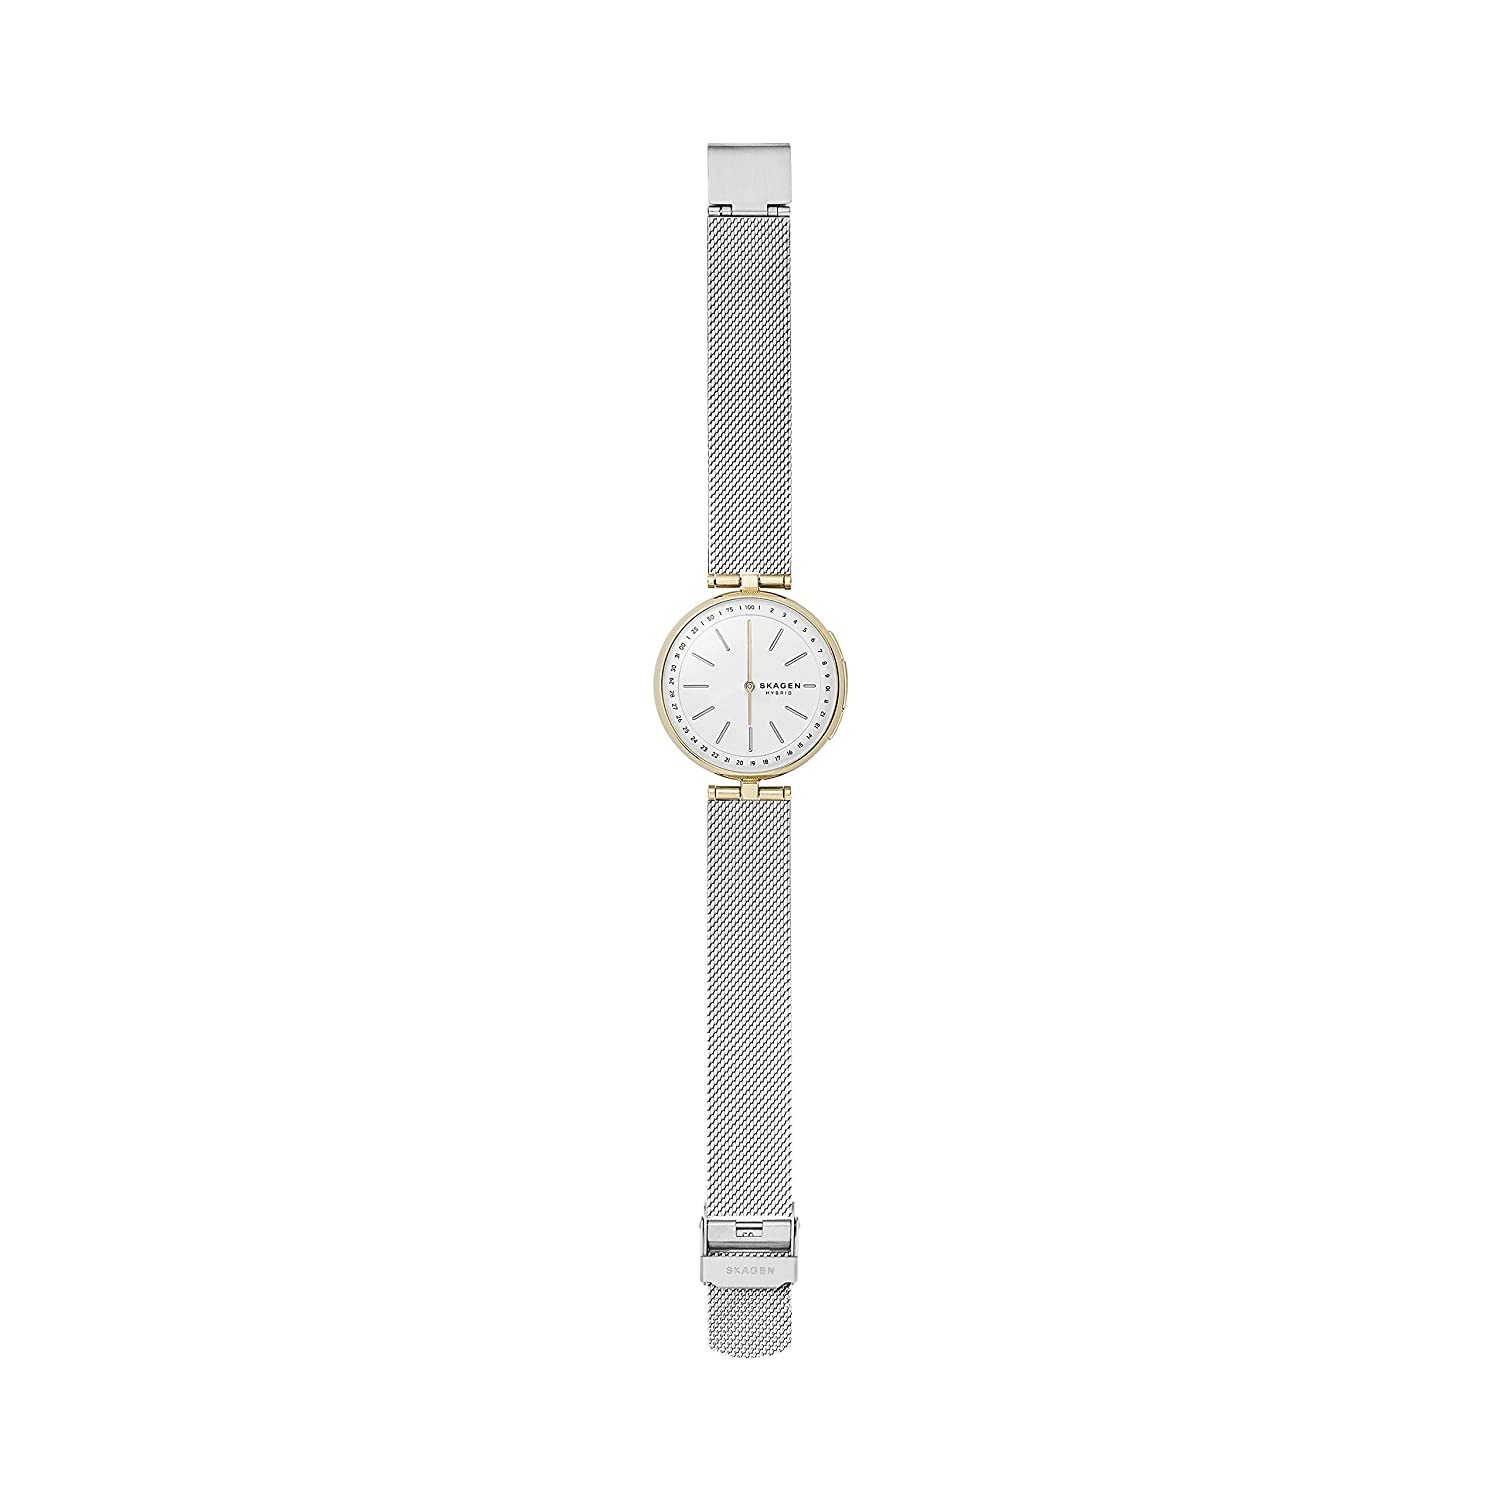 Hybrid SmartwatchColorGold Bar Two Women's Skagen Connected T Mesh Stainless And Tone SilvermodelSkt1413 Signatur Steel 7gfvY6yb